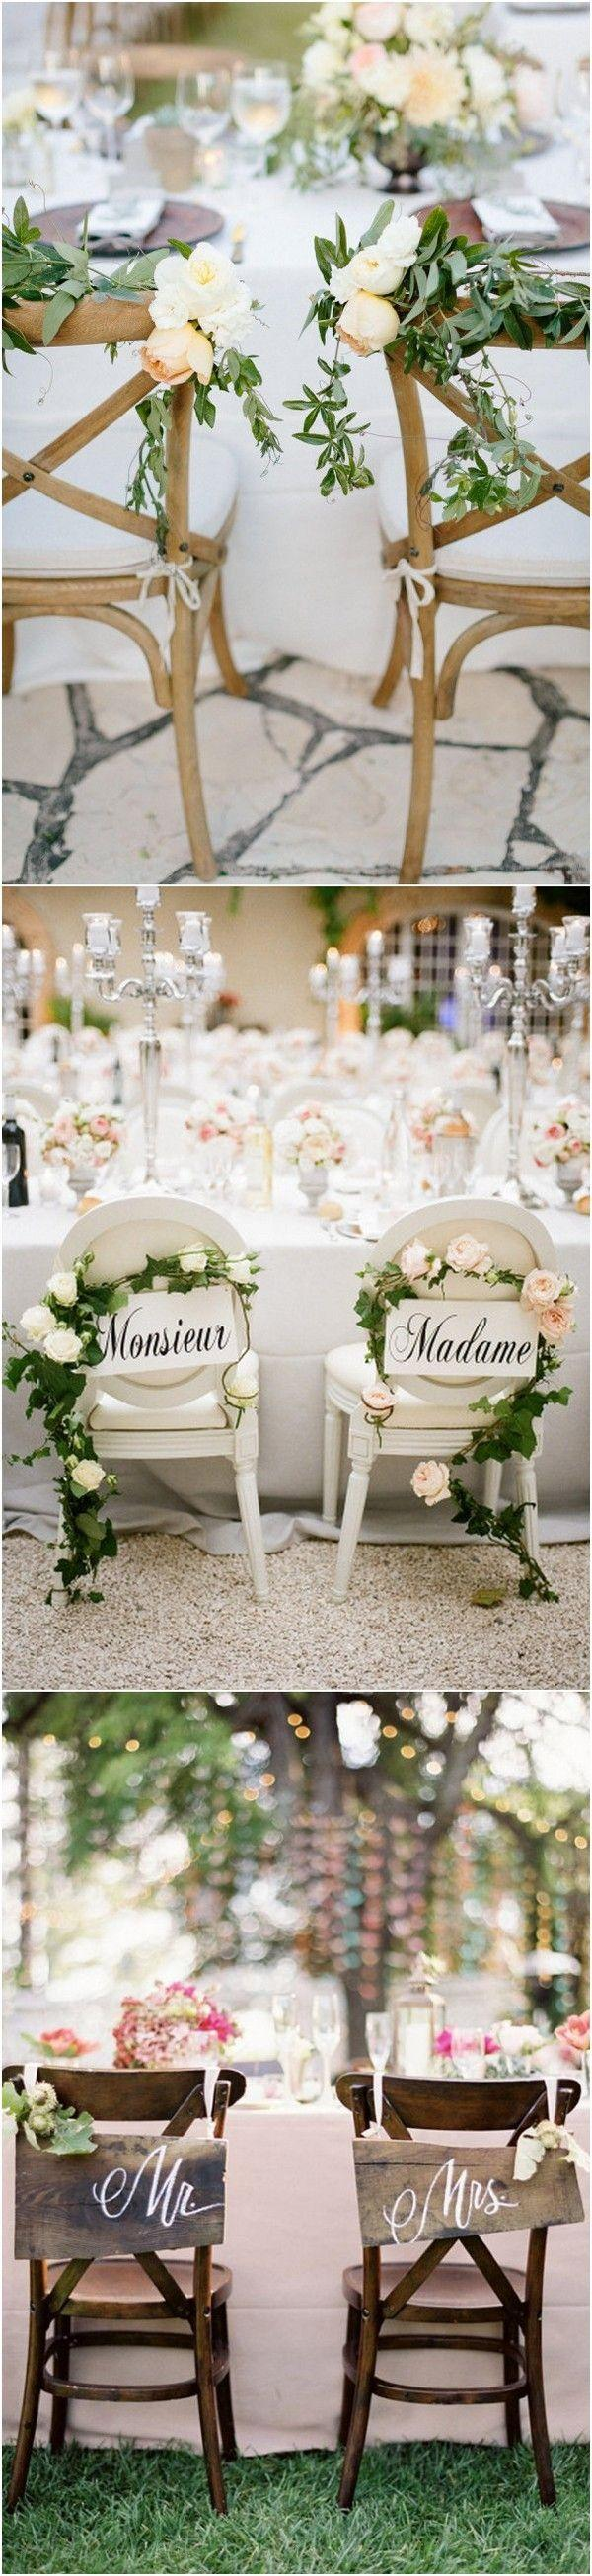 Mariage - 12 Chic Bride And Groom Wedding Chair Decoration Ideas